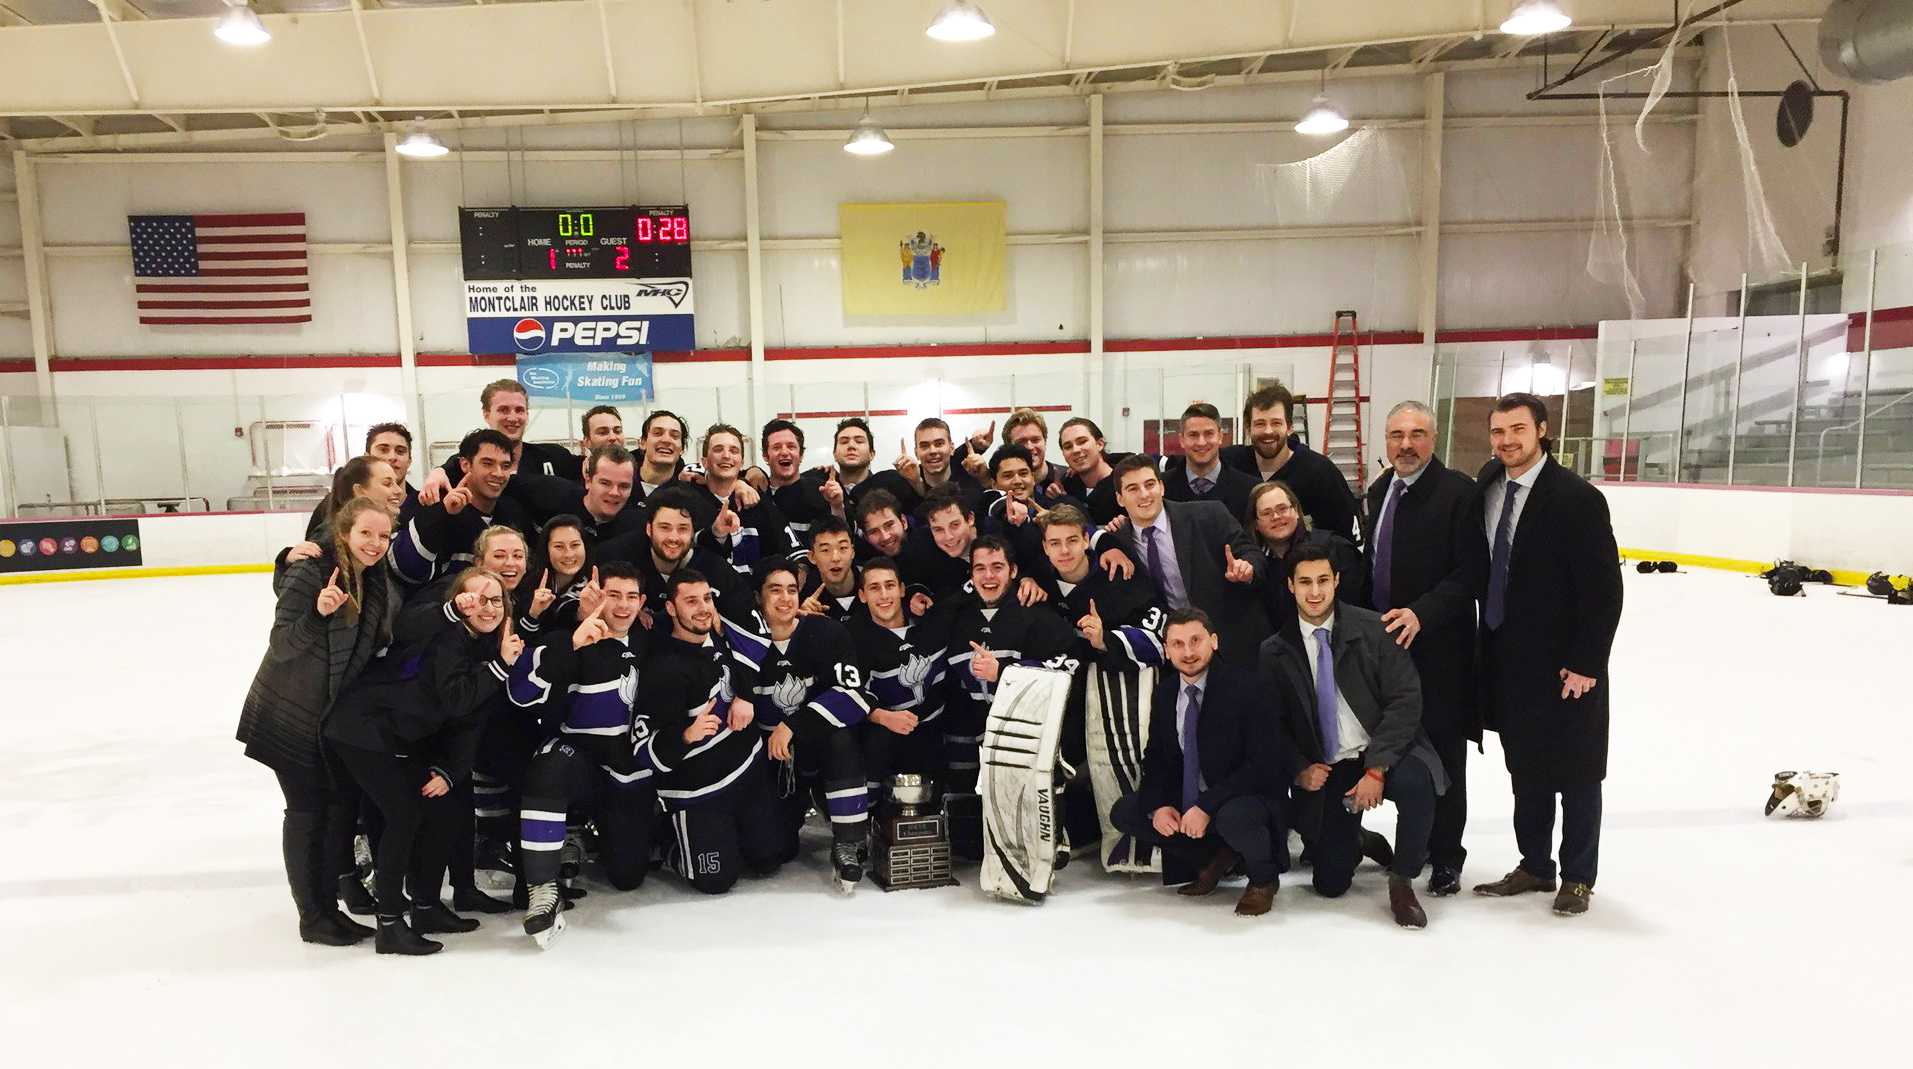 The NYU men's hockey team played their last Division-II game on Sunday night. They ended the season with a victory as the American Collegiate Hockey Association national champions.